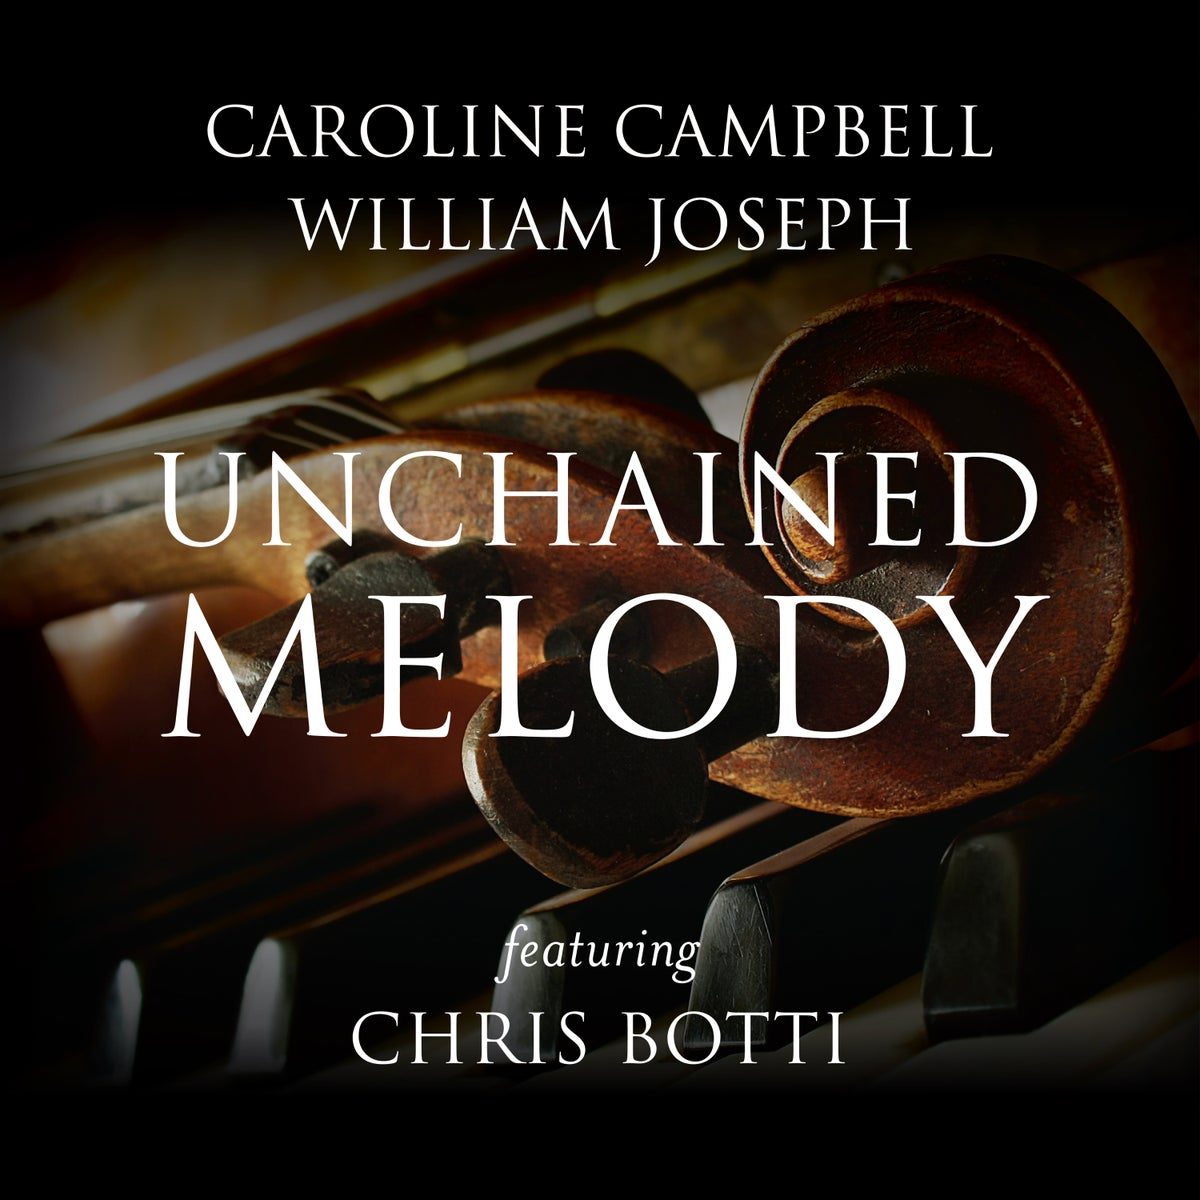 Star Auto Parts >> Unchained Melody (Sheet Music) / Caroline Campbell Store